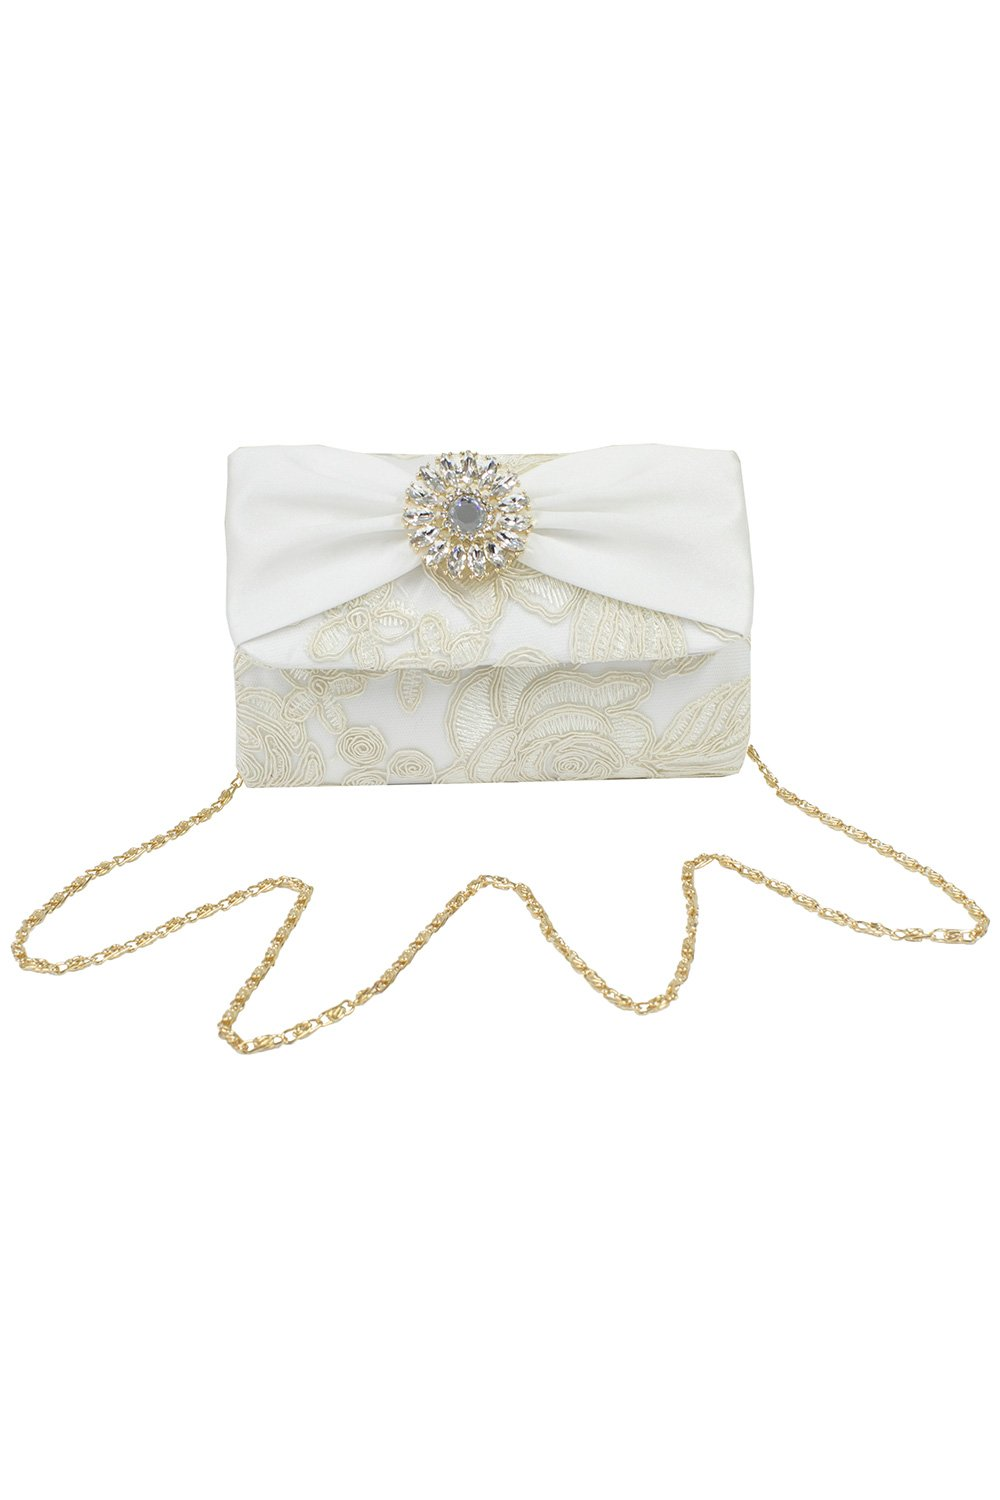 Bejeweled Ivory Clustered Clutch